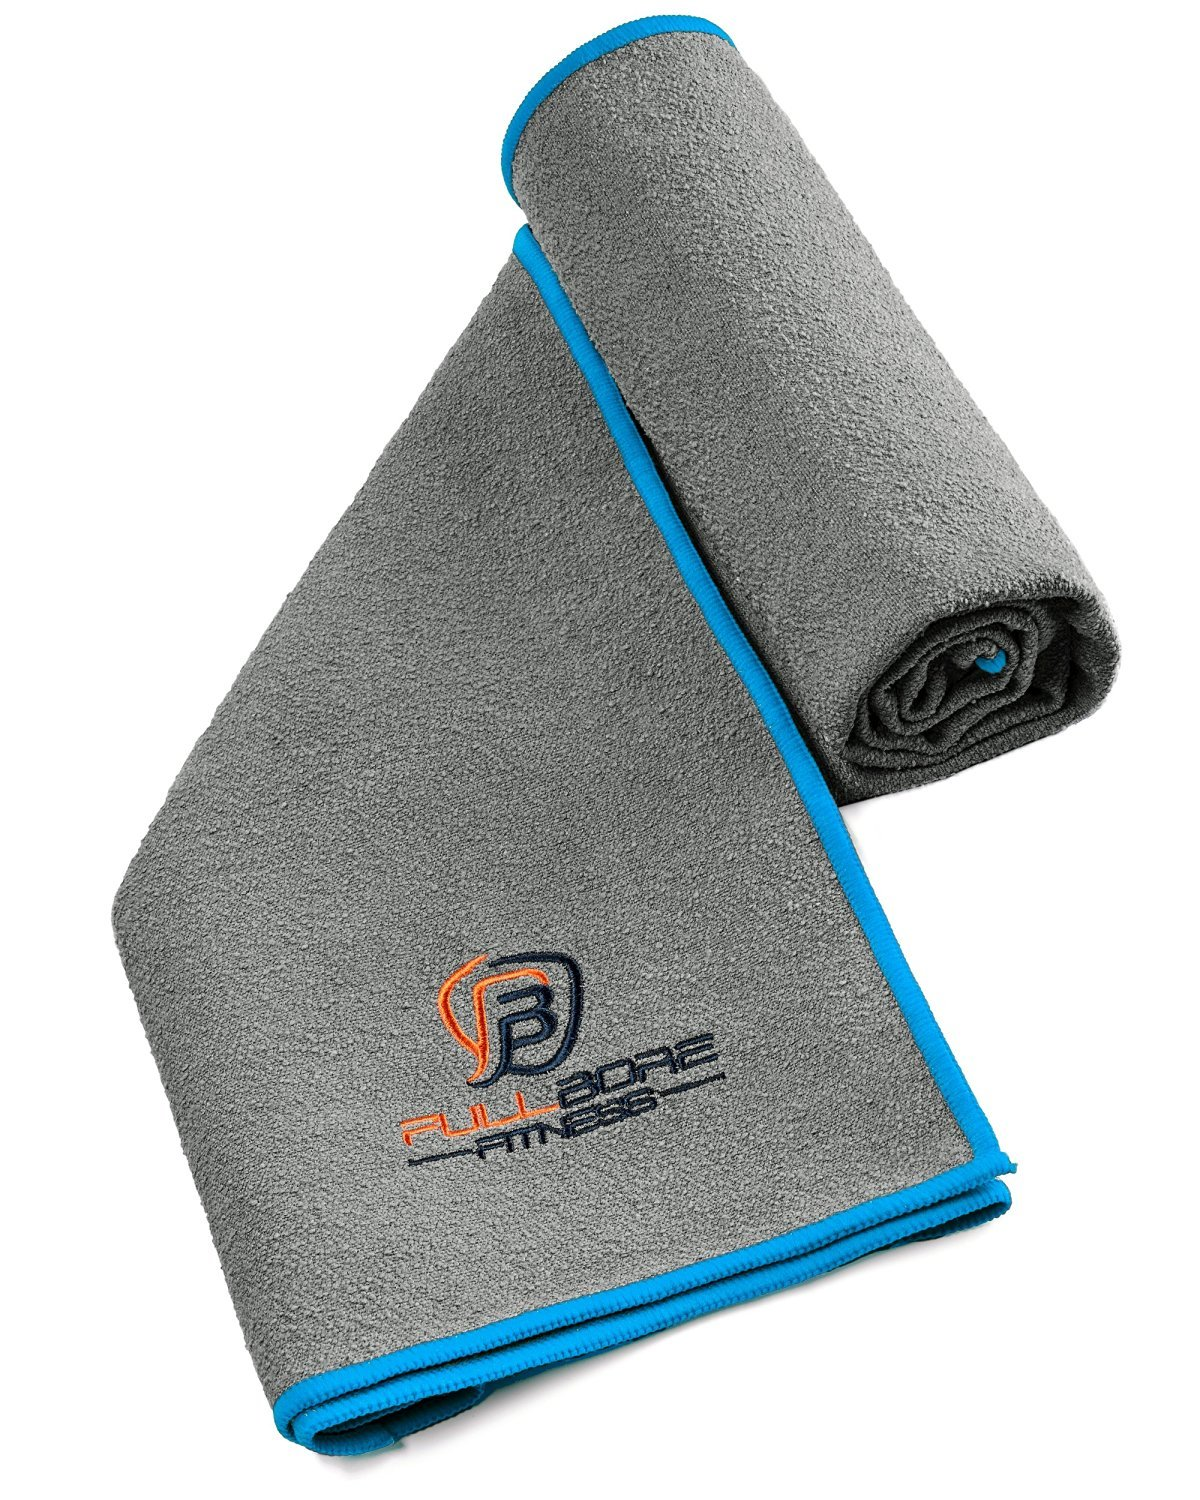 Fullbore Fitness Exercise Fitness Gym Towel